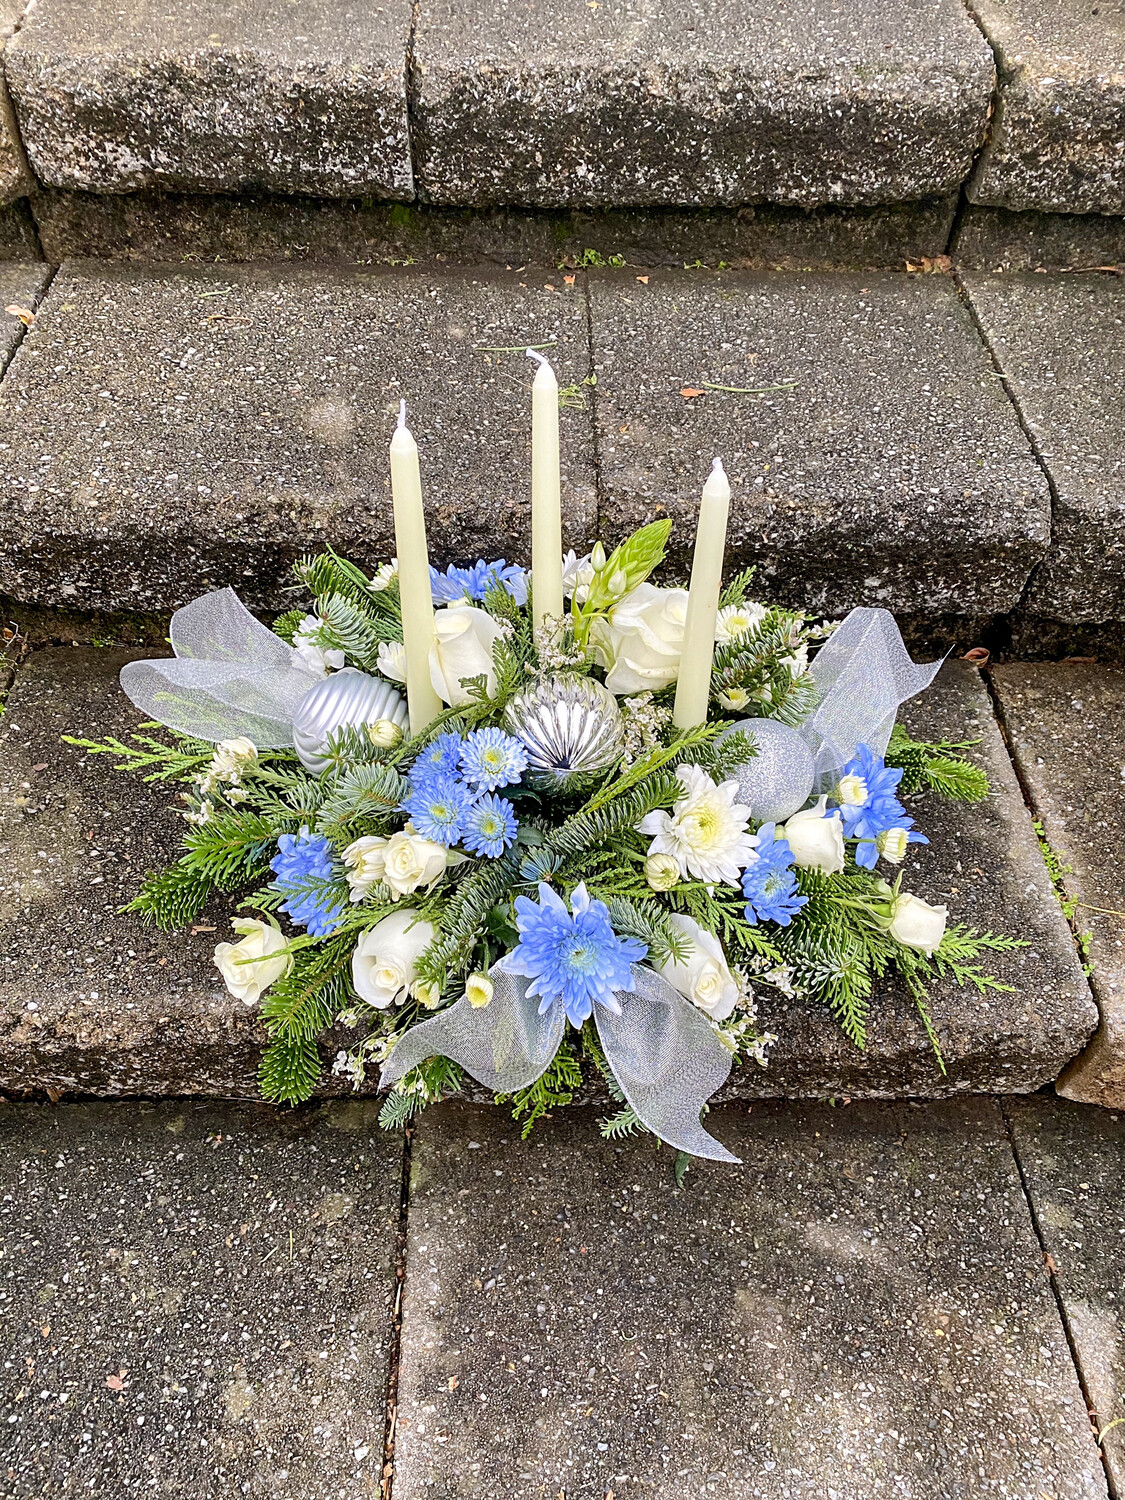 $125 Winter Holiday Three Candle Blue, White, and Silver Fresh Flower Centerpiece Arrangement